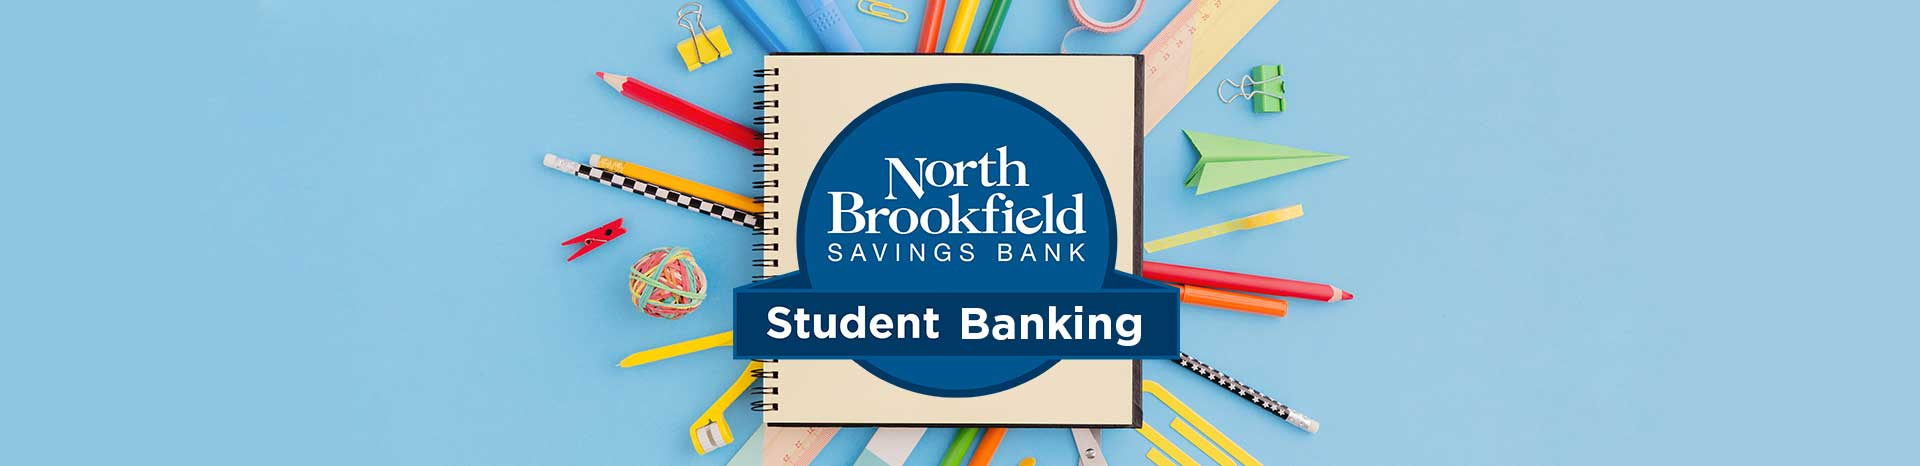 NBSB student banking